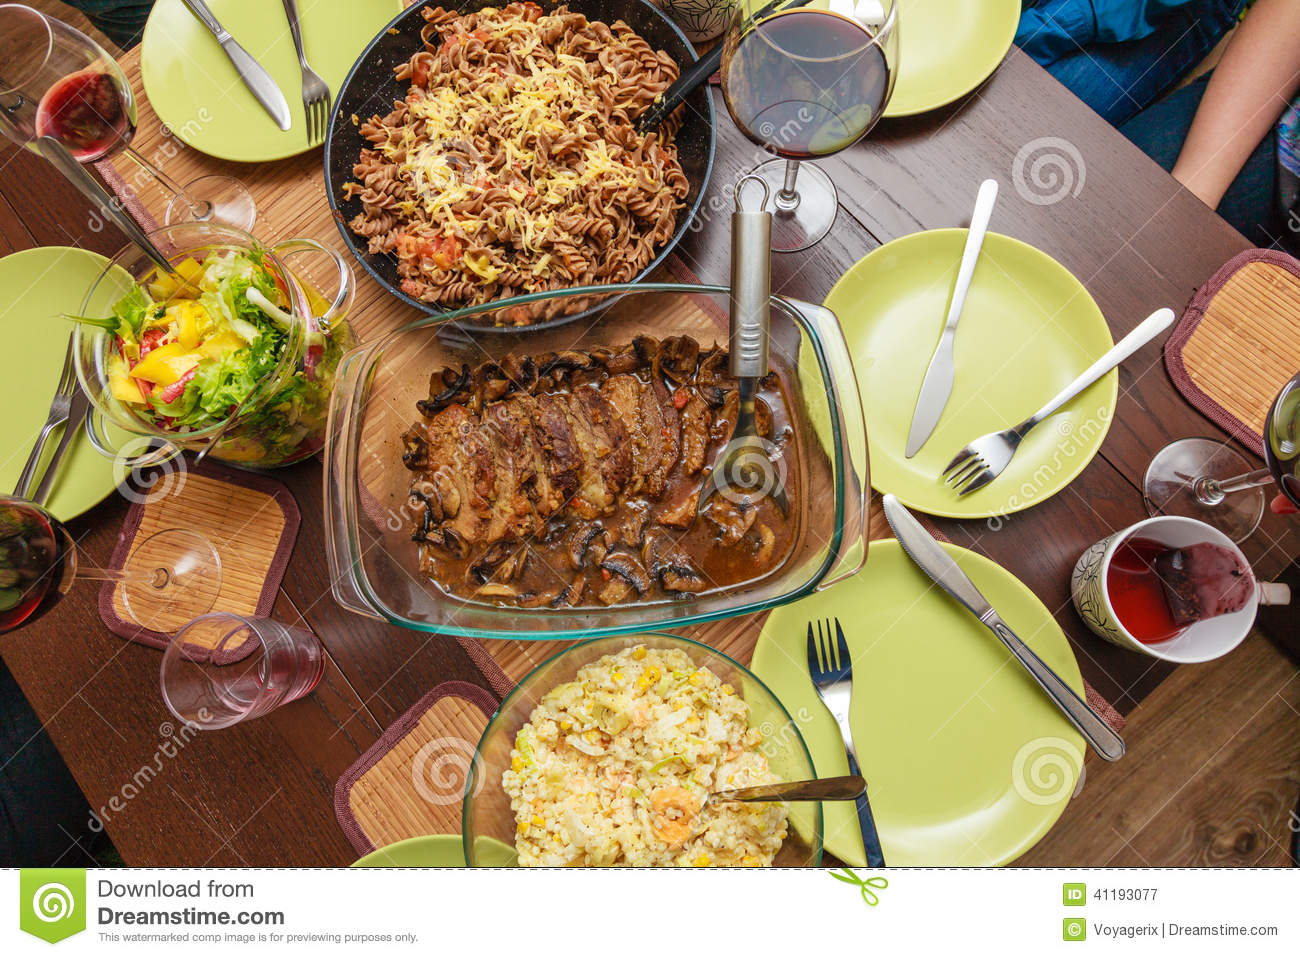 Superbe Ready Dinner On The Table. Meal Time. Stock Image   Image